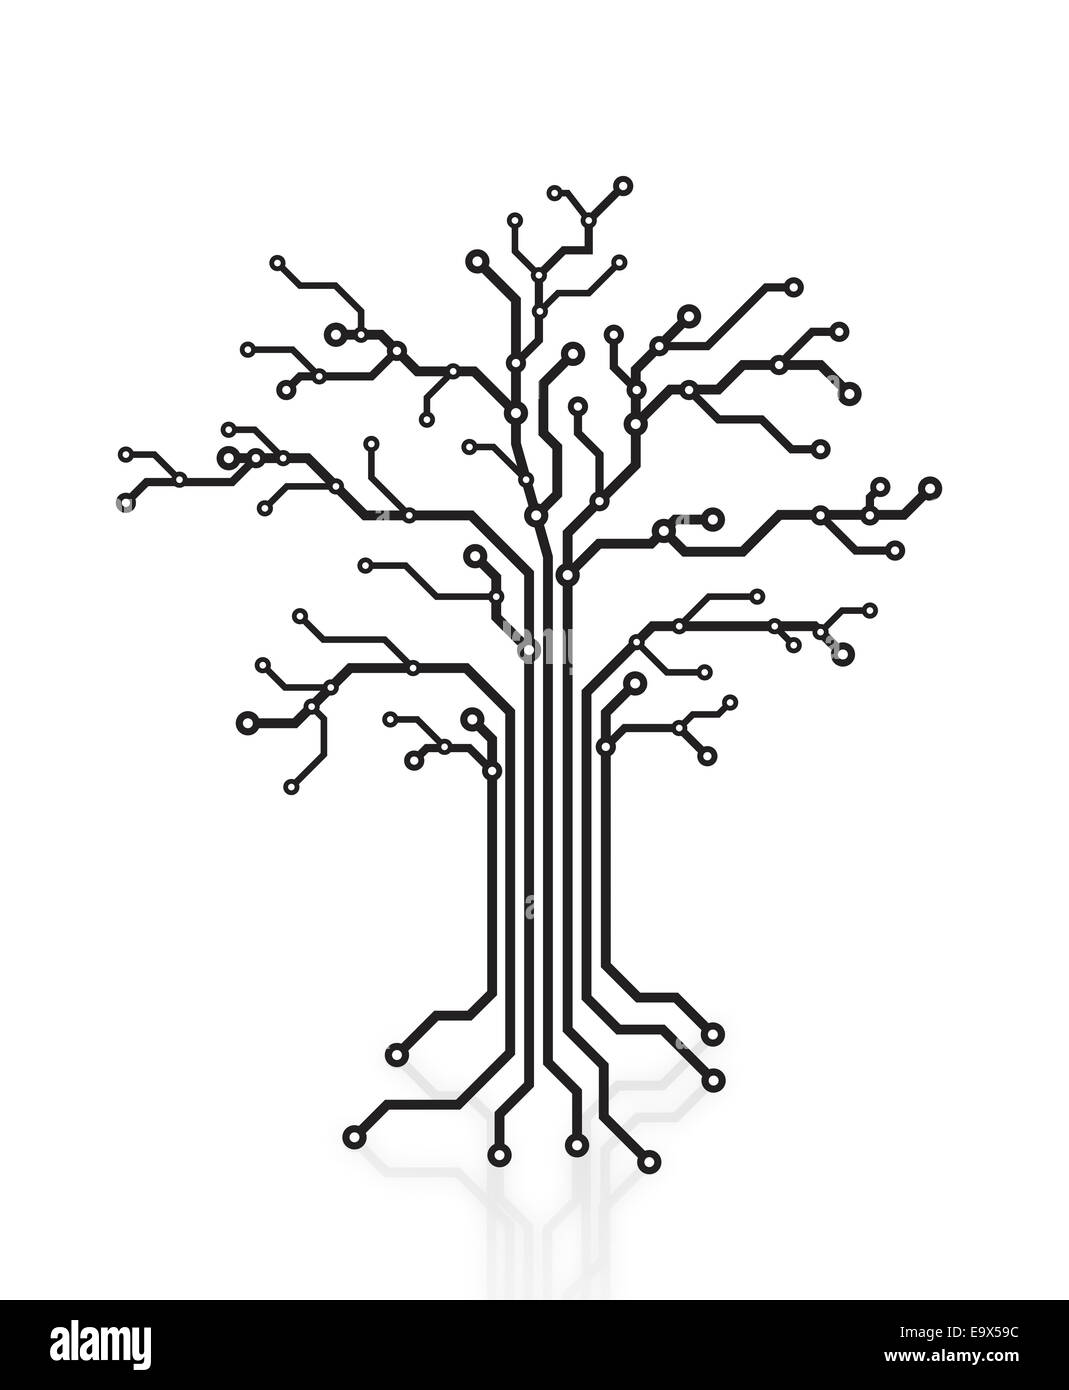 Digital tree made of circuits, conceptual illustration isolated on white background - Stock Image